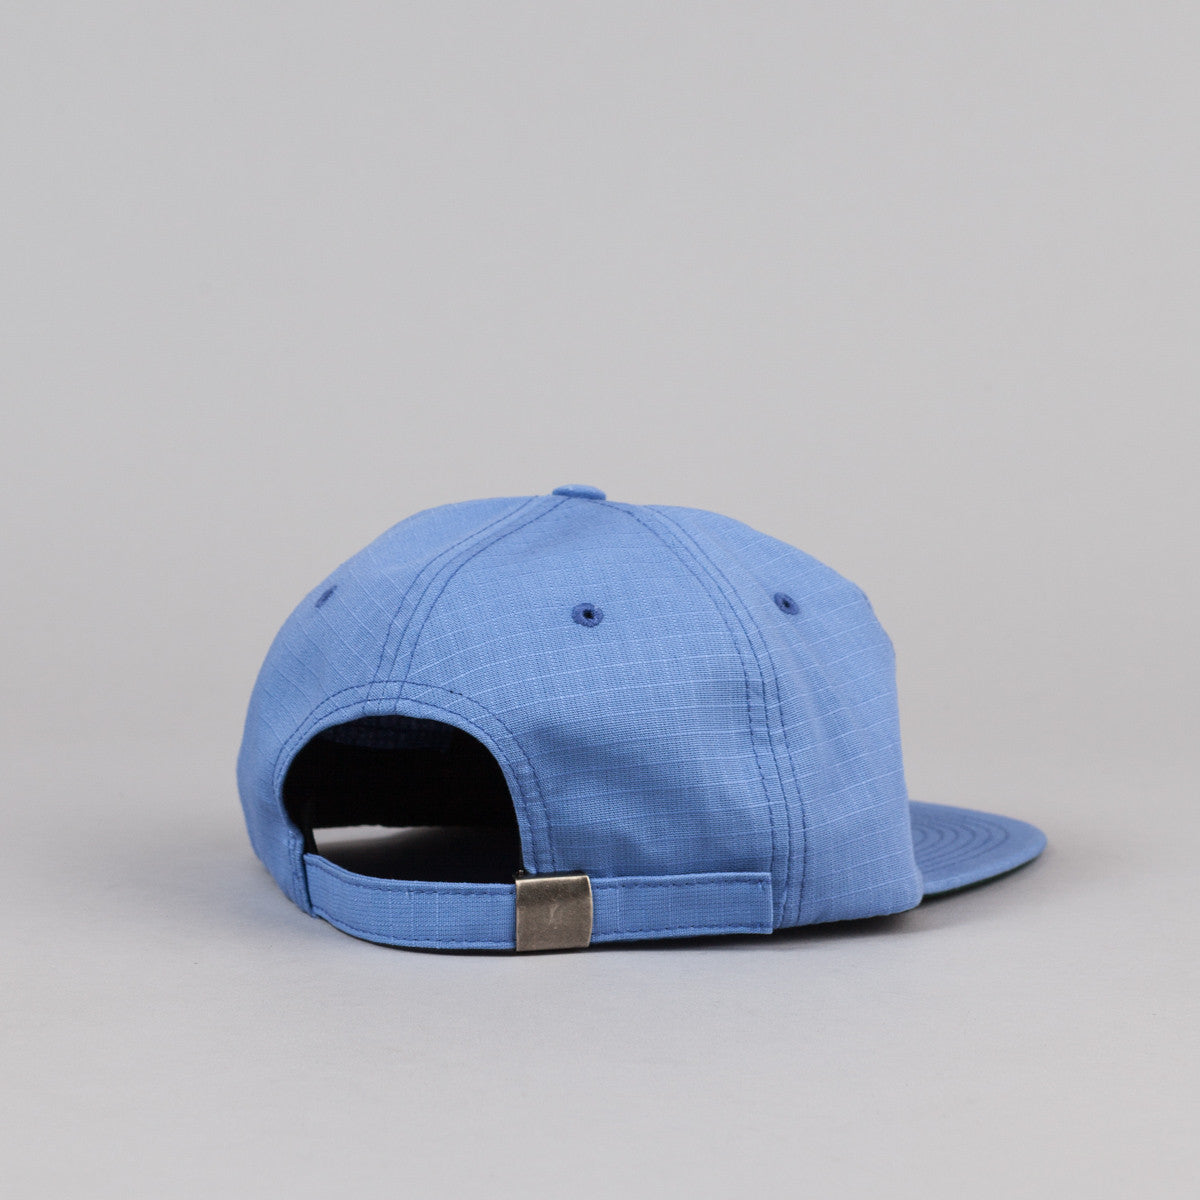 Raised By Wolves Raines Polo Cap - Ciel